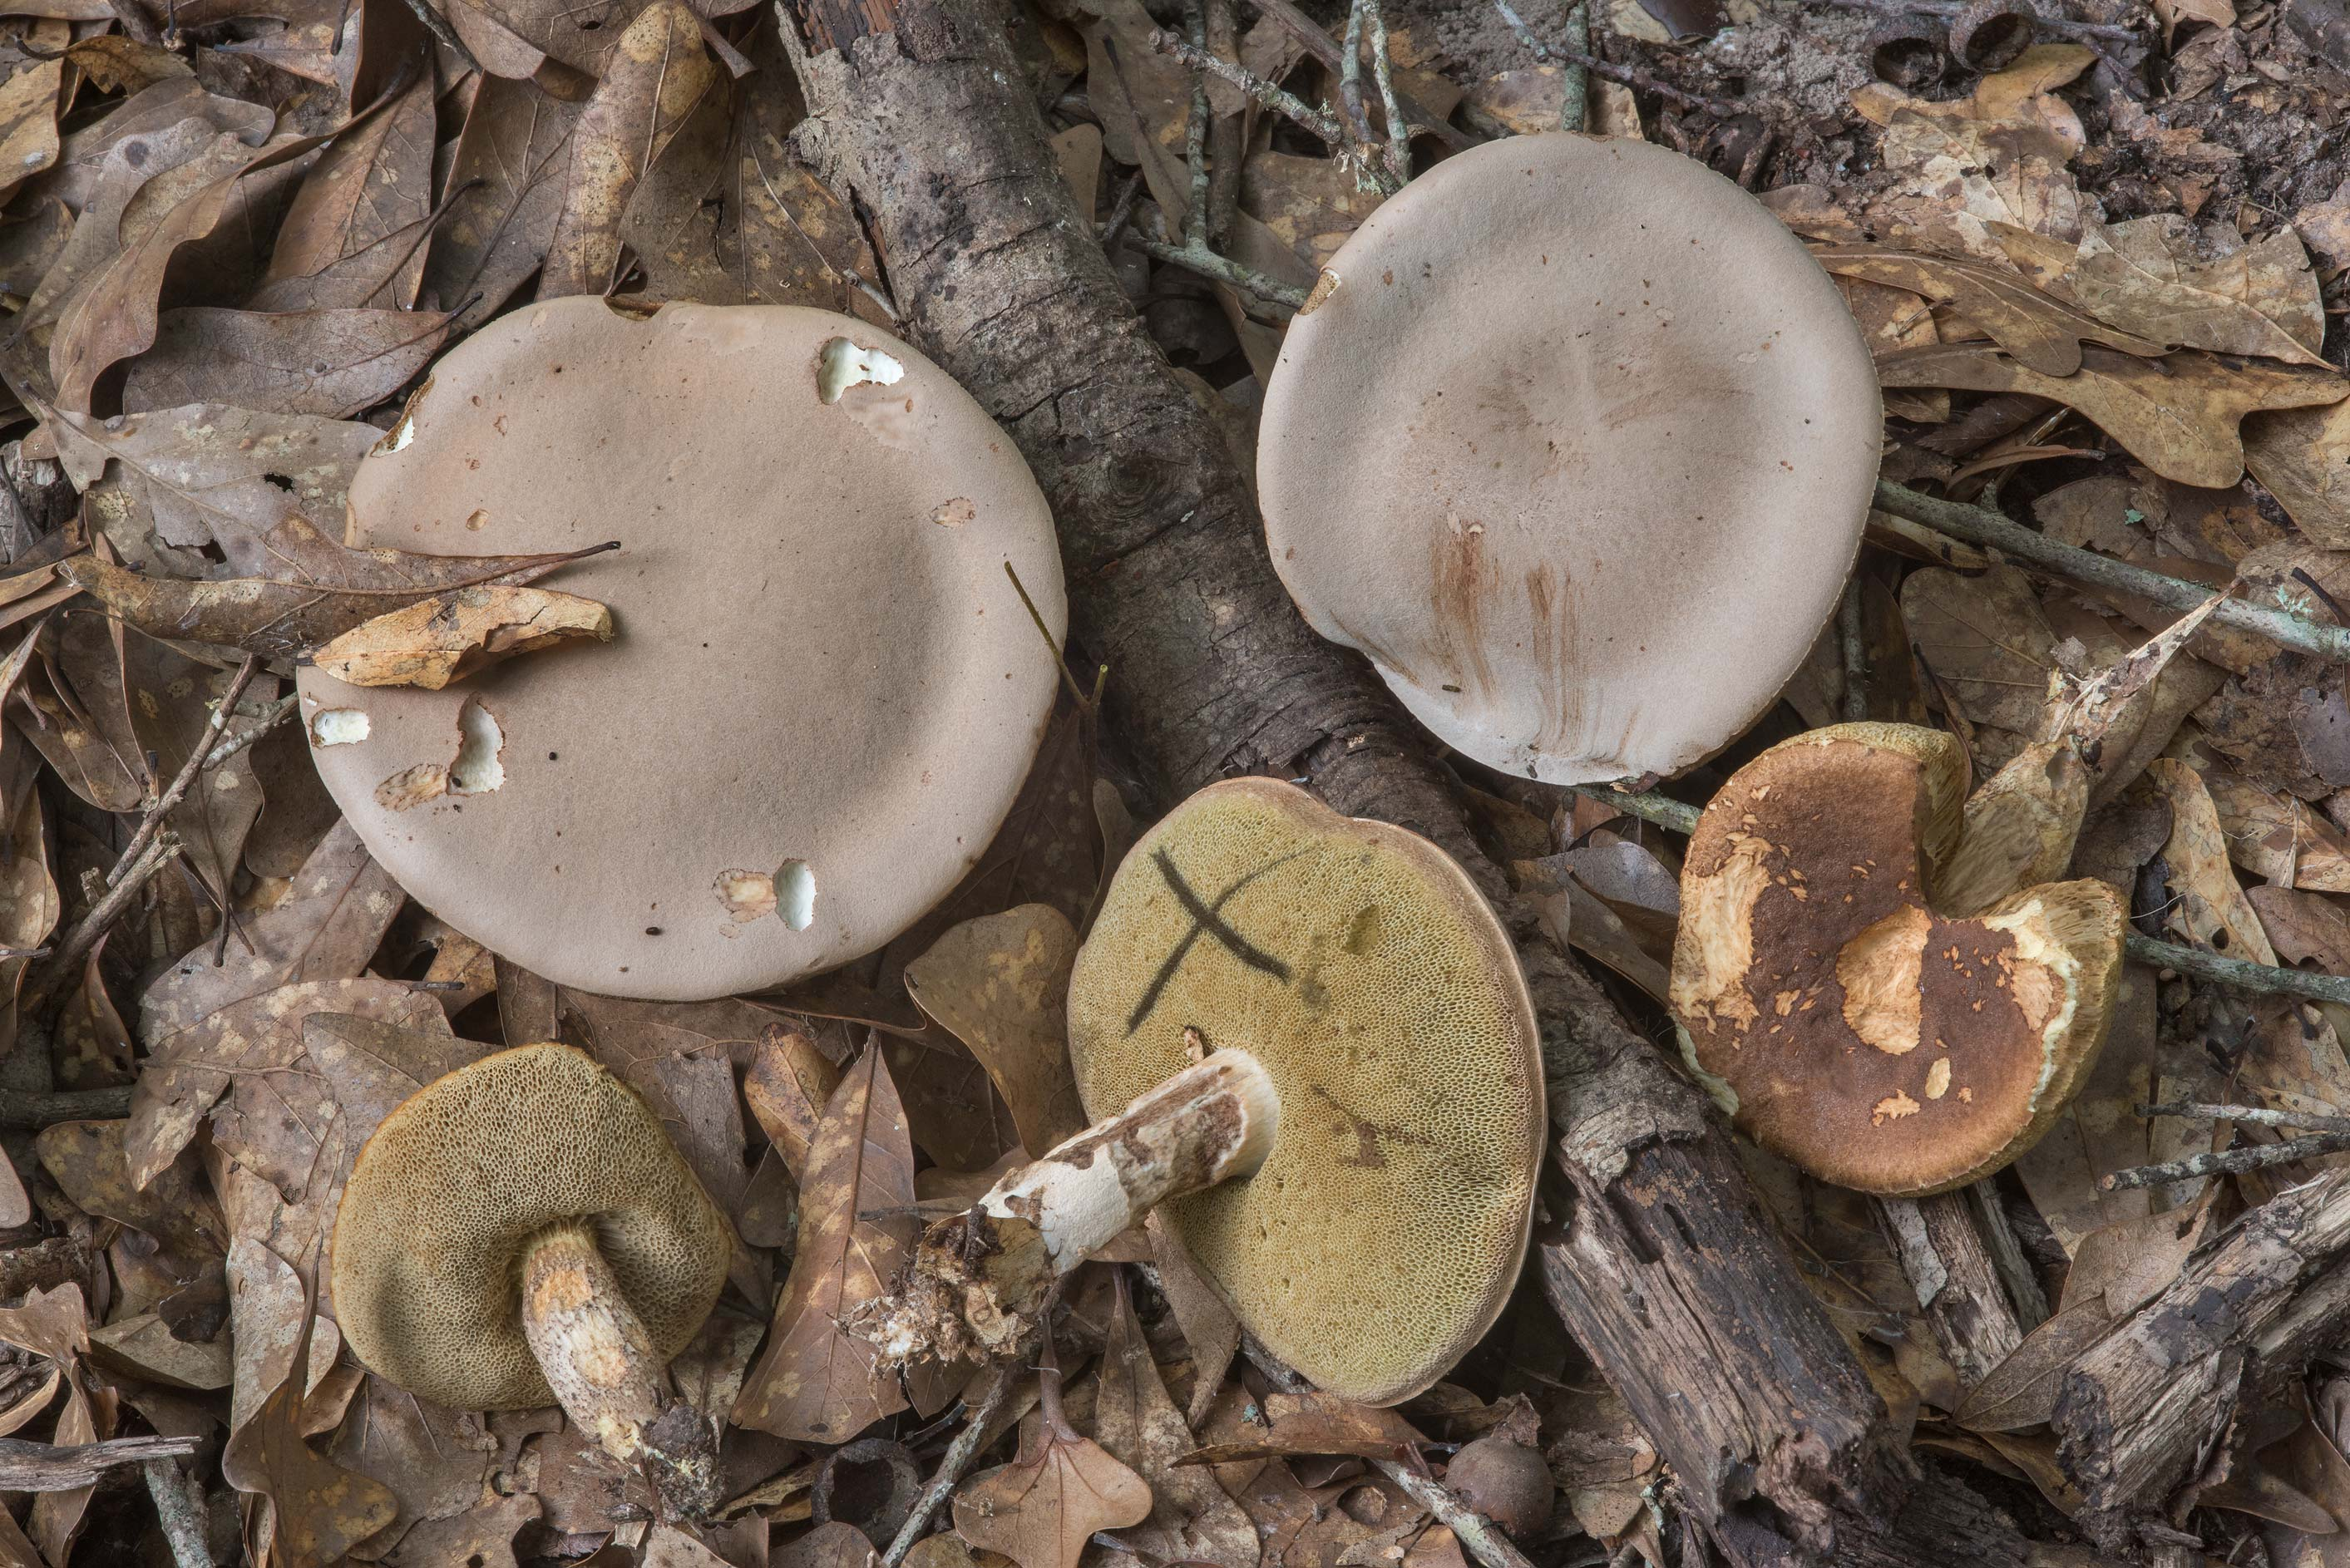 Pallid bolete mushrooms (Boletus pallidus) in Lick Creek Park. College Station, Texas